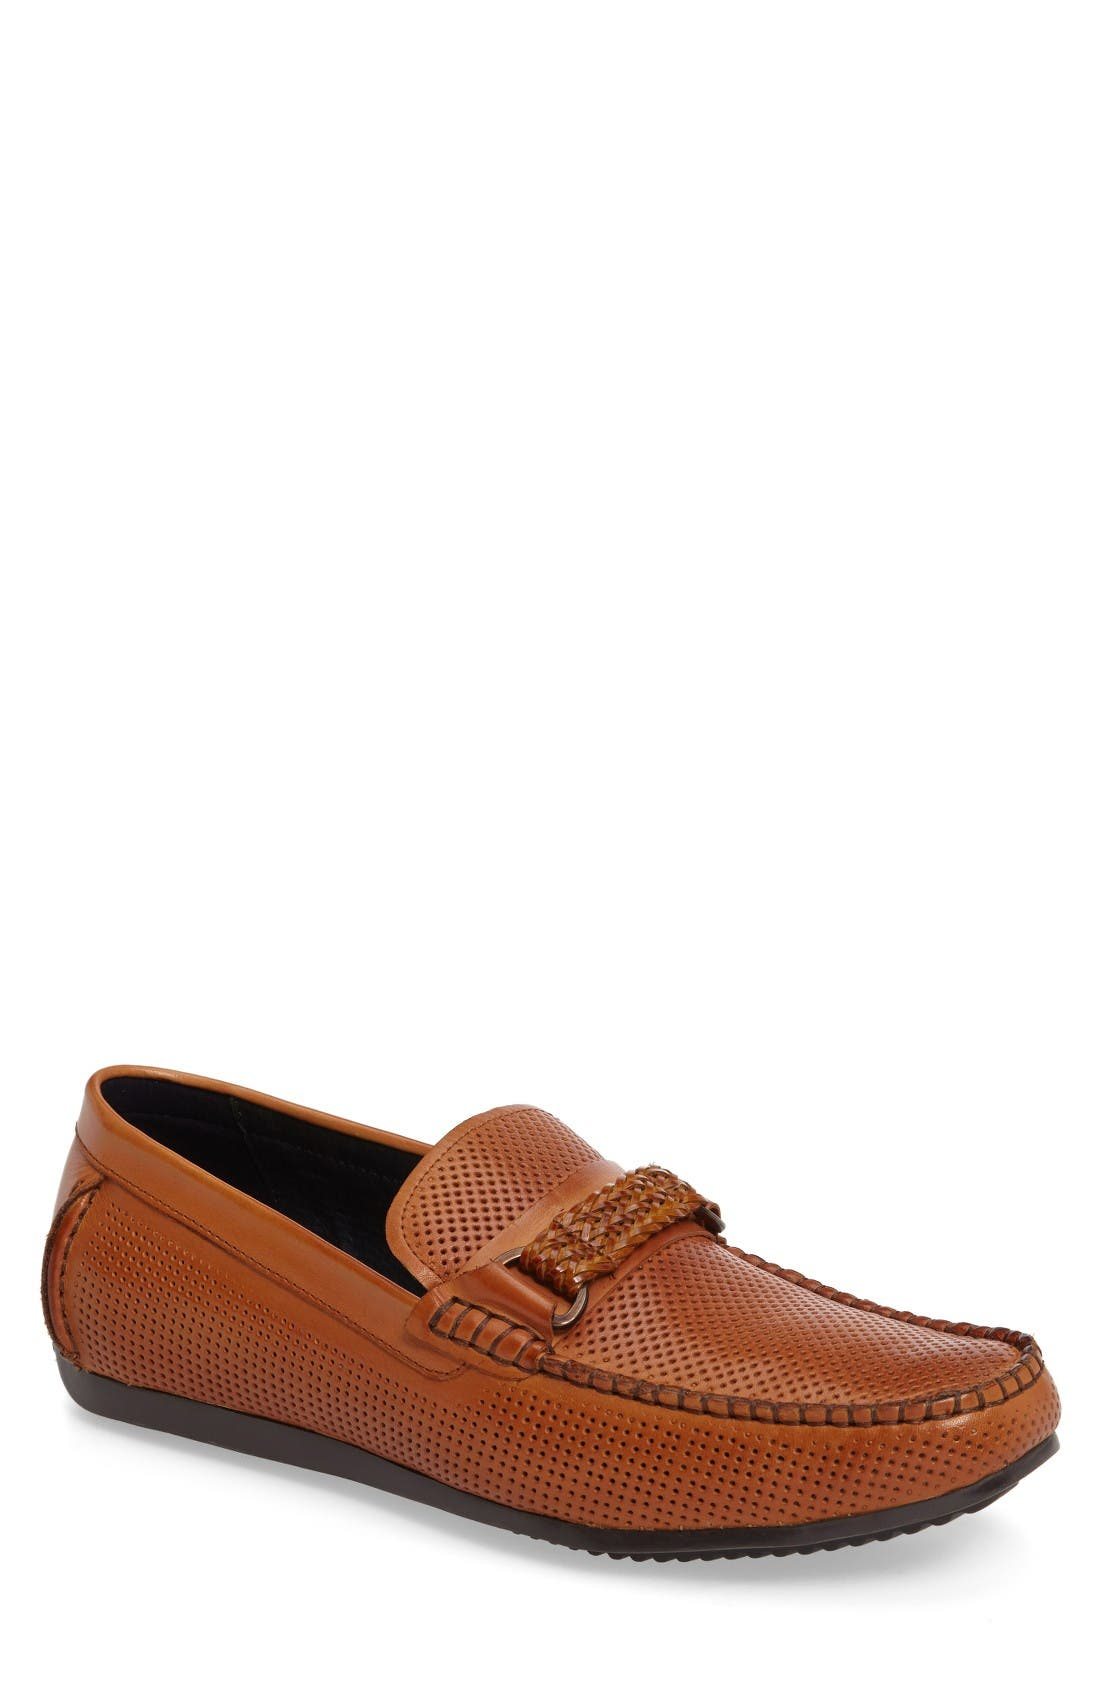 Zanzara Masaccio Venetian Loafer (Men)